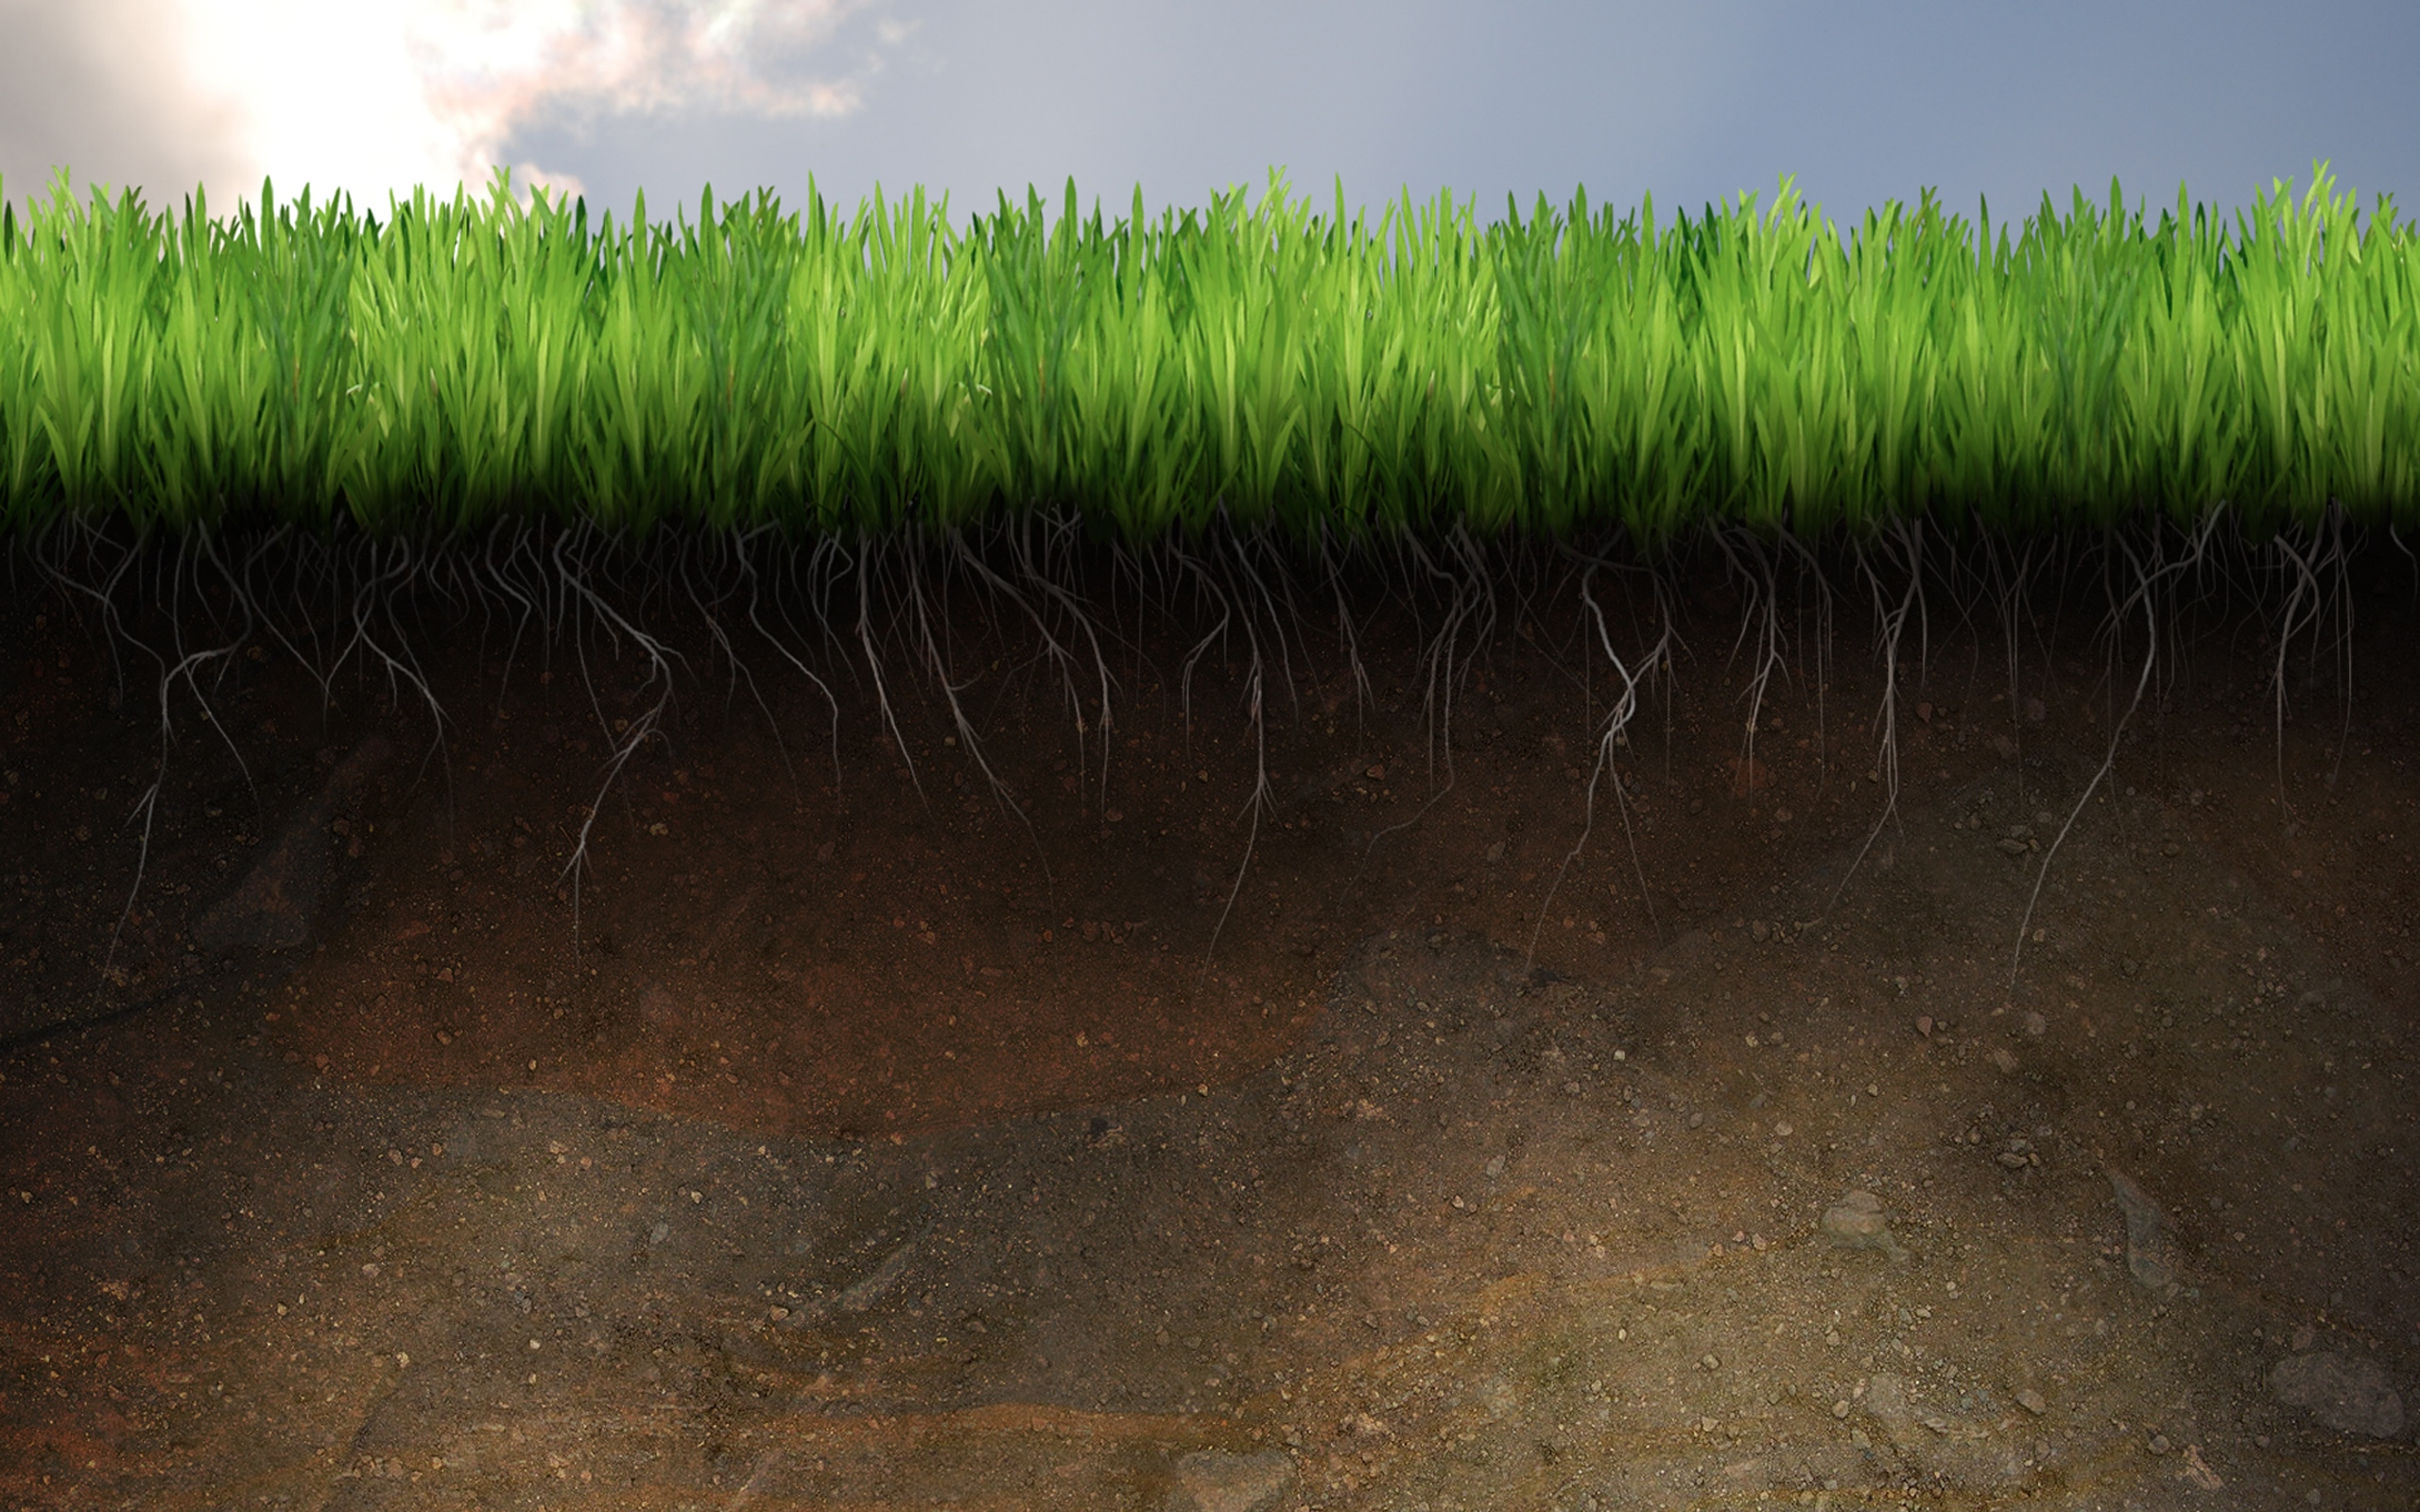 soil_and_grass_2560_blogdowallpaper